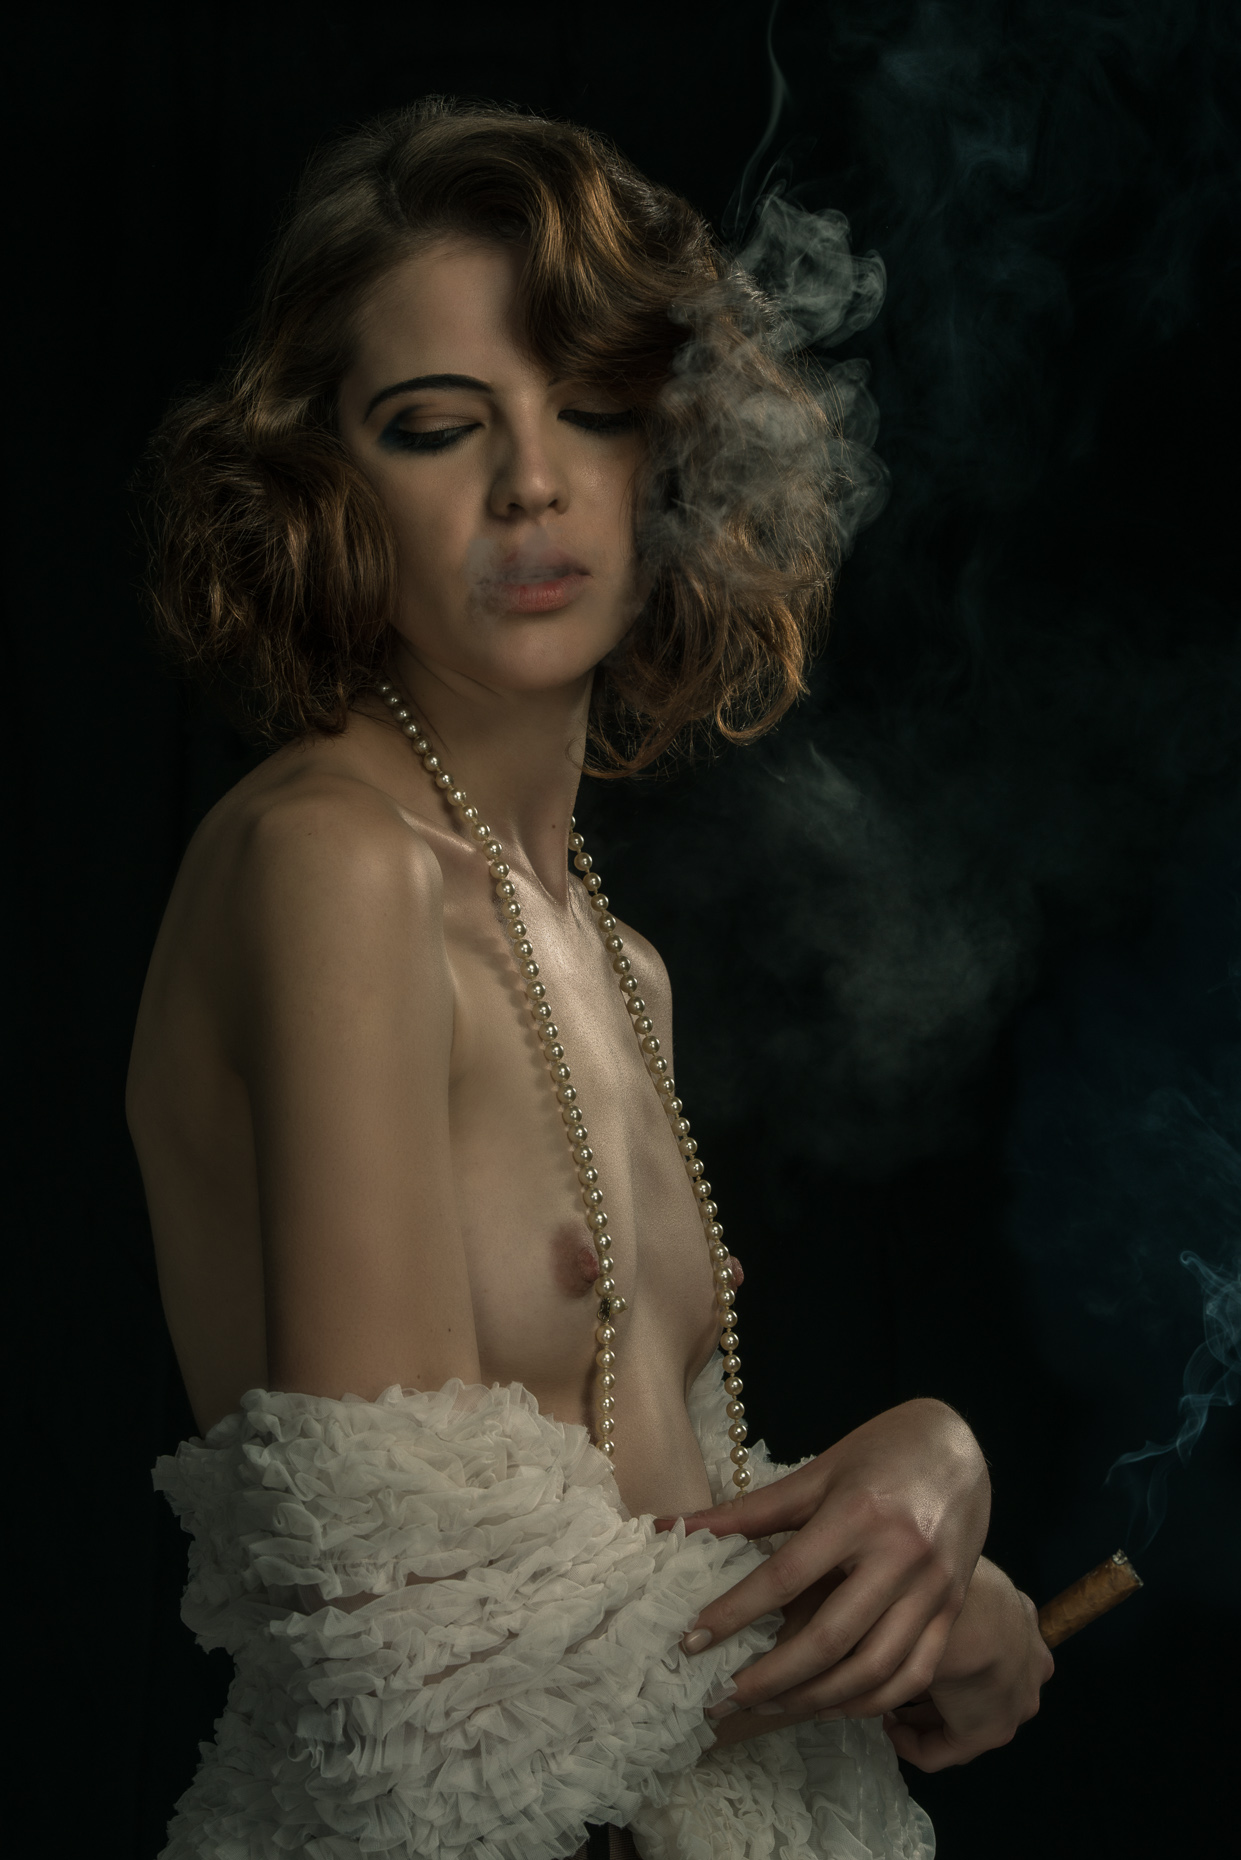 Smoking-model-semi-naked-white-shawl